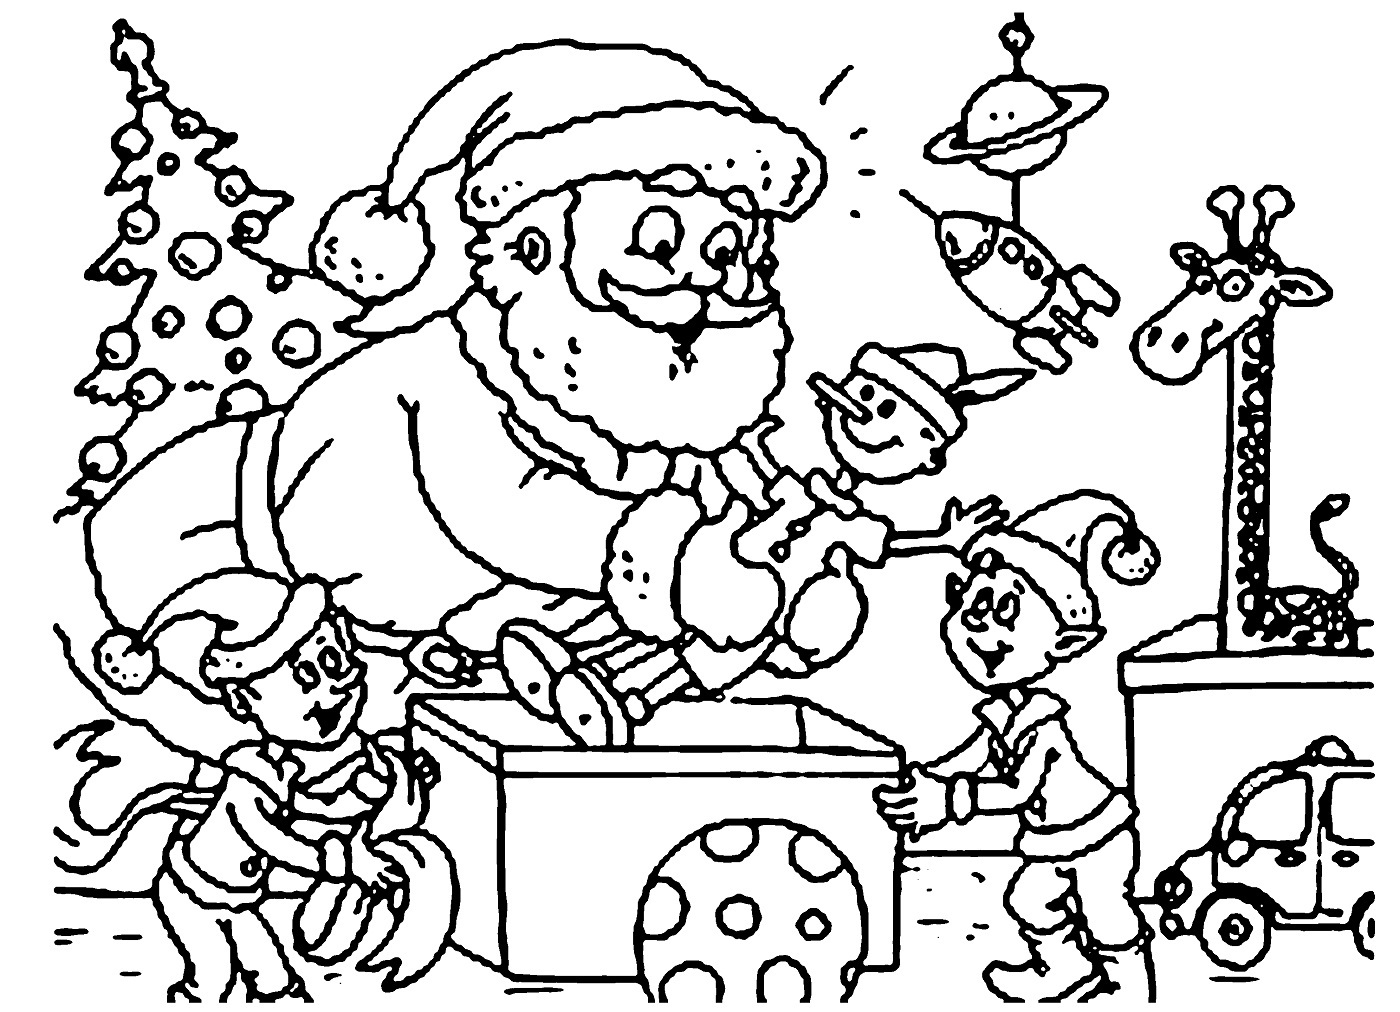 Santa Claus In Sleigh Coloring Page Christmas Santa Drawing At Getdrawings Free For Personal Use